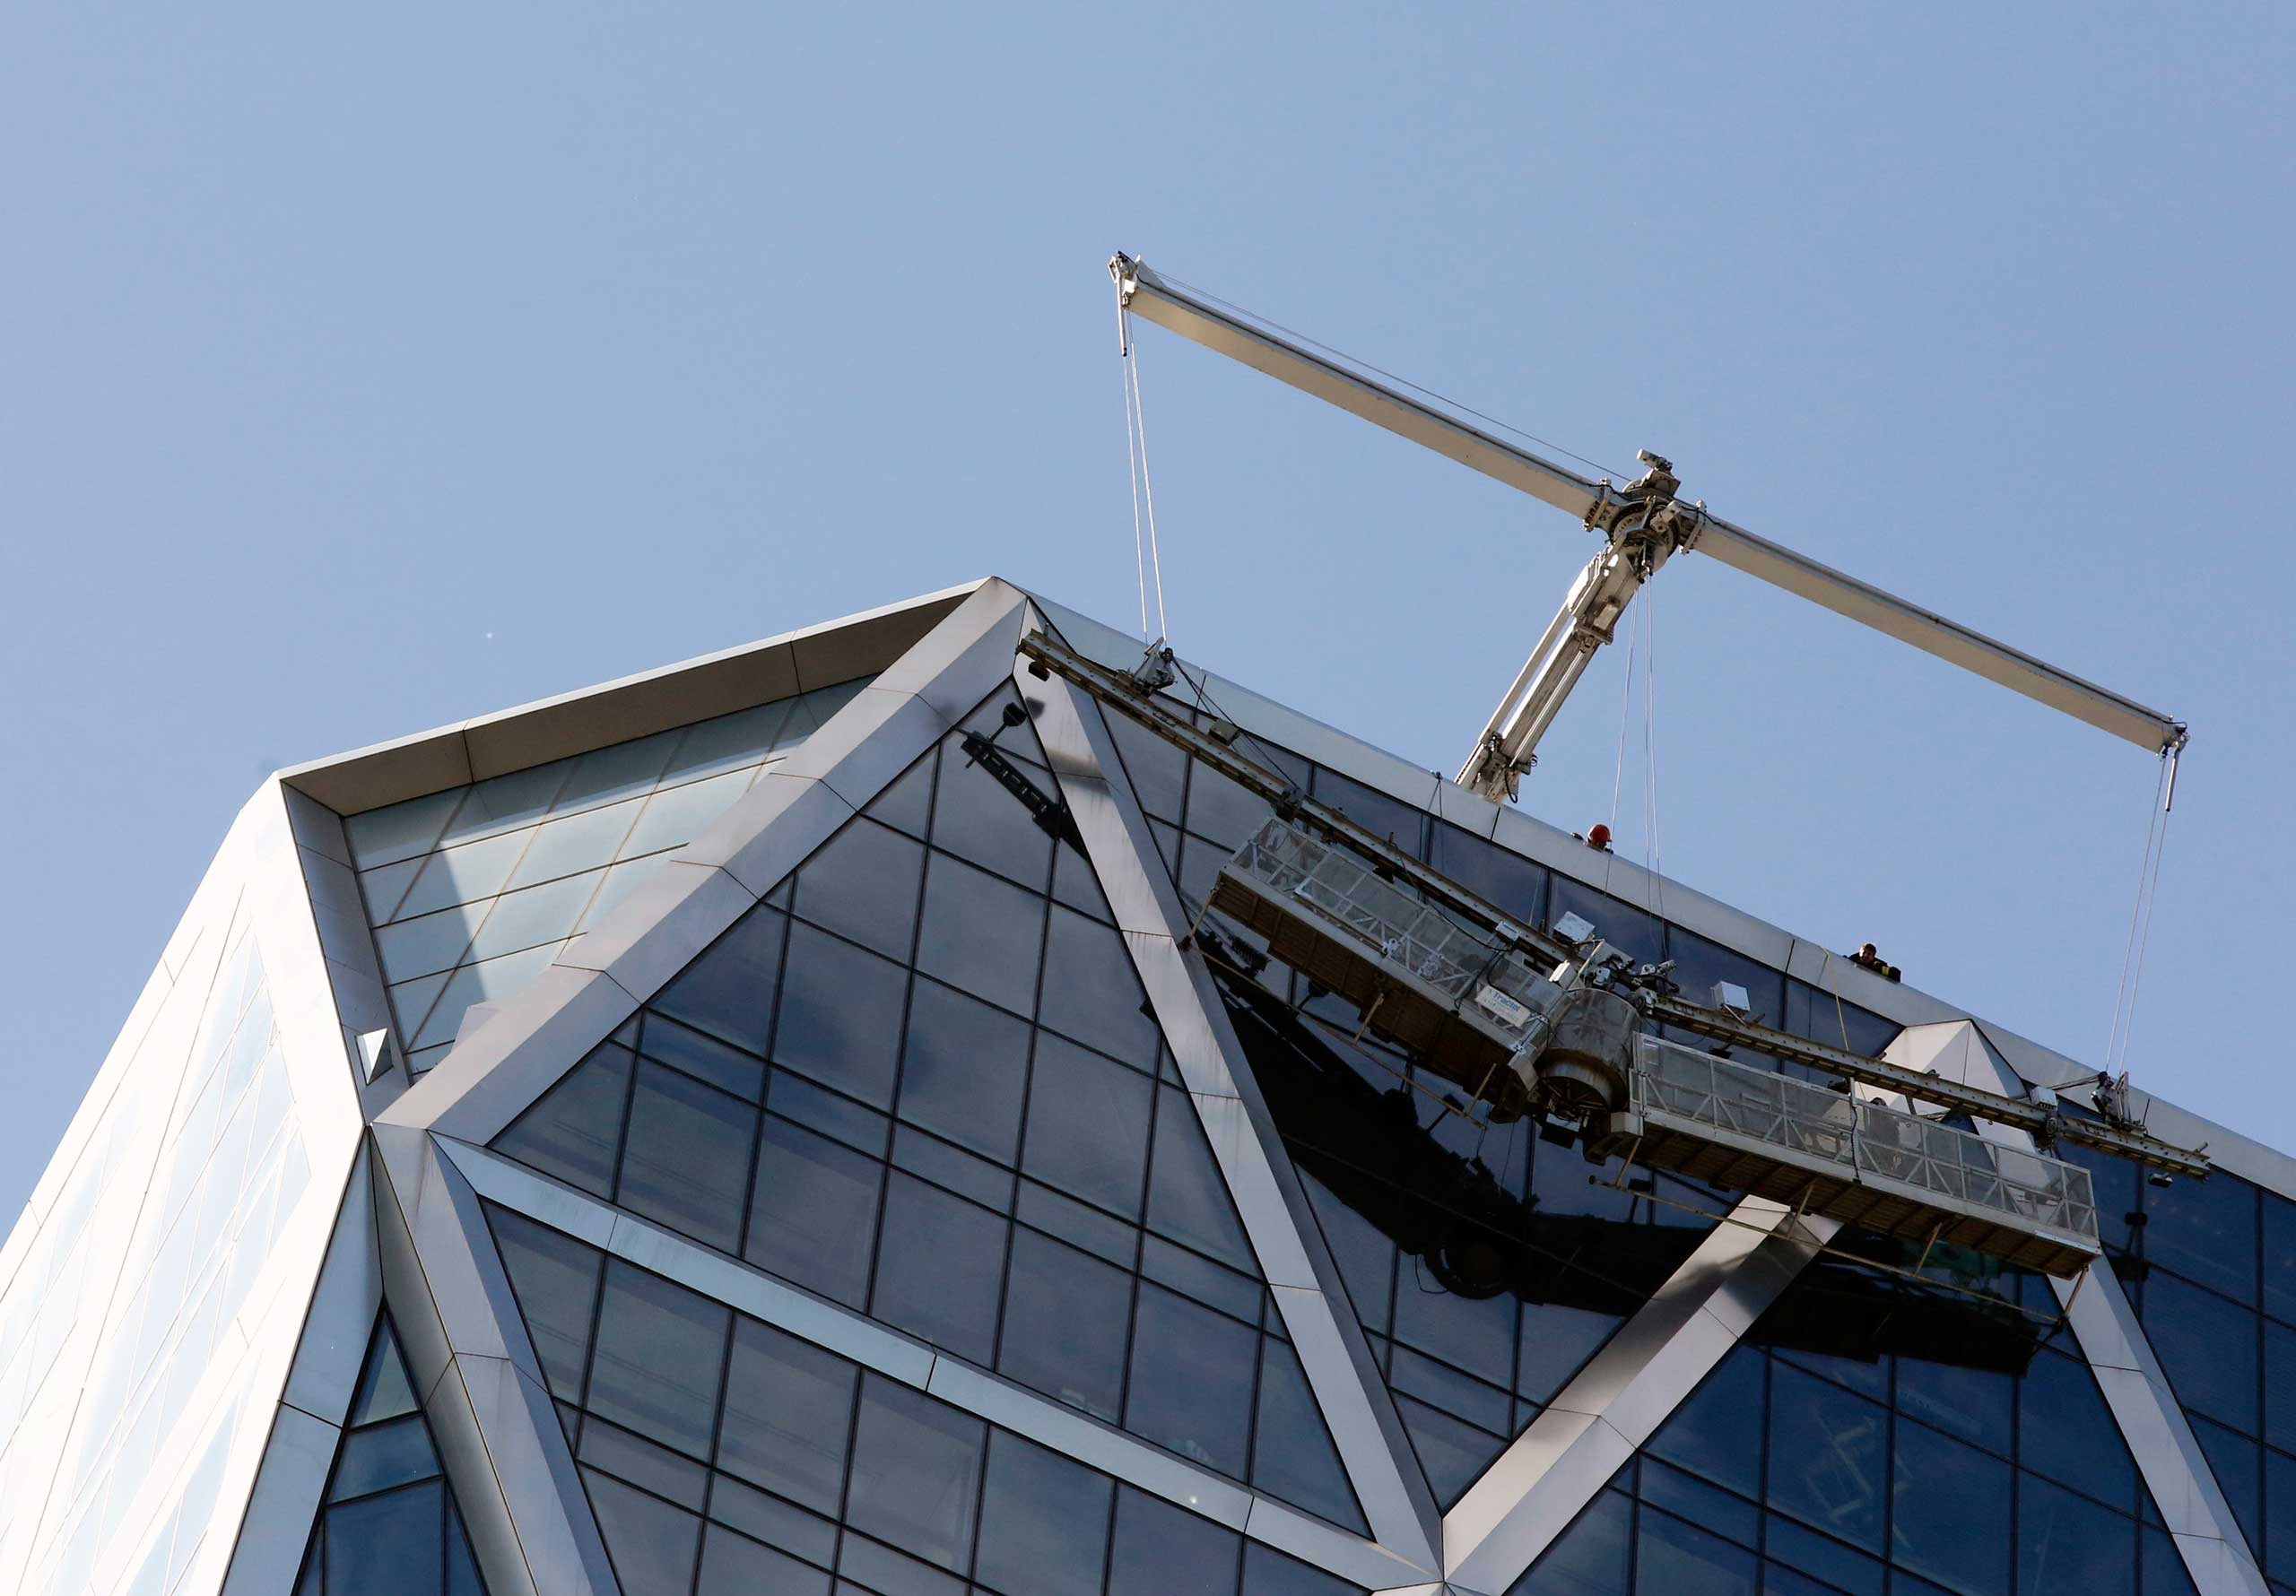 Rescuers help window washers trapped on the Hearst Tower in New York in 2013.